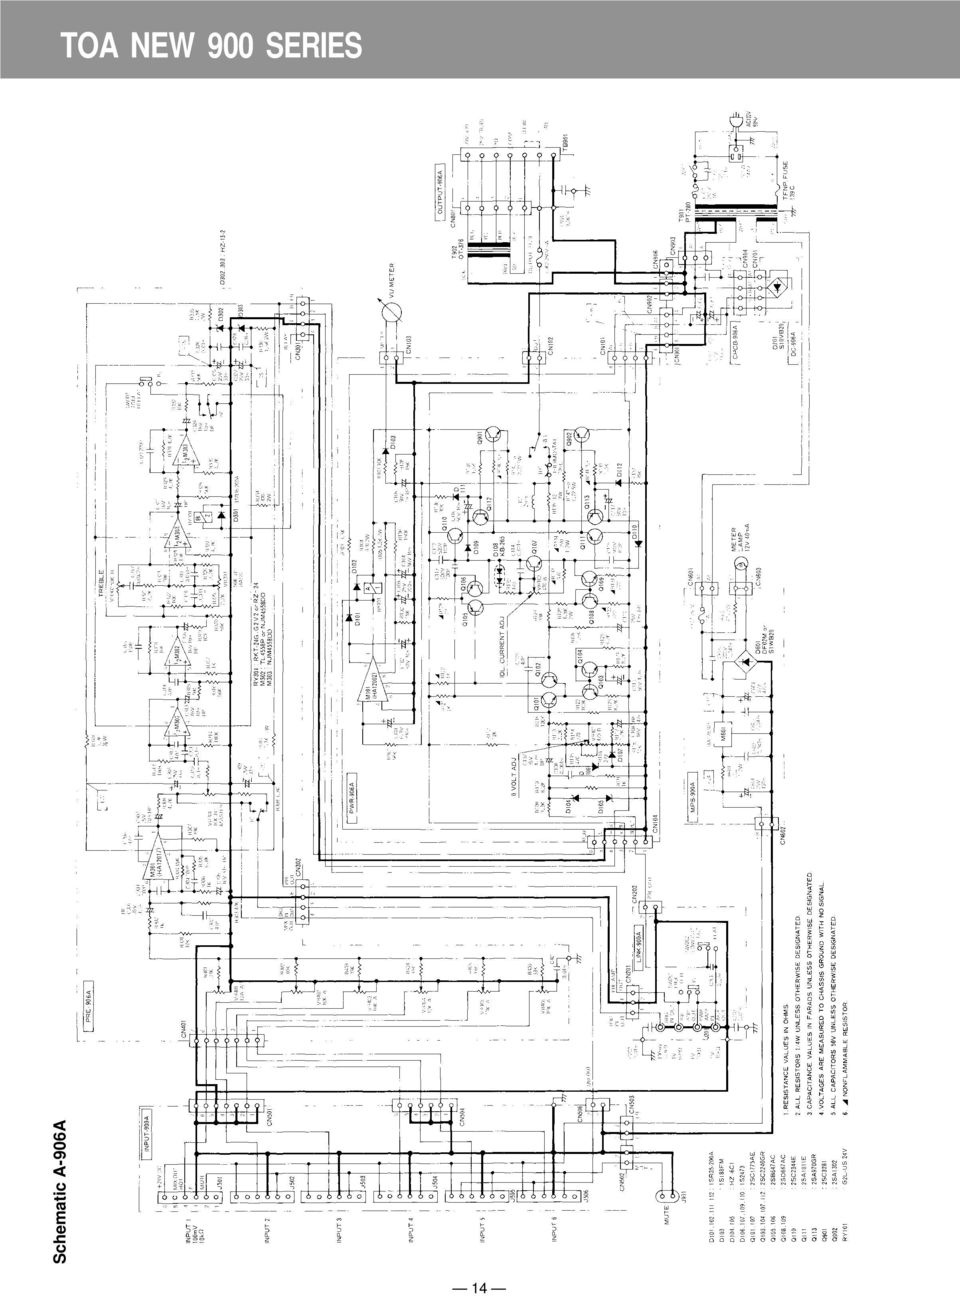 Toa New 900 Series Mixer Power Amplifier Pdf Msd 8460 Wiring Diagram 14 Schematic A 906a